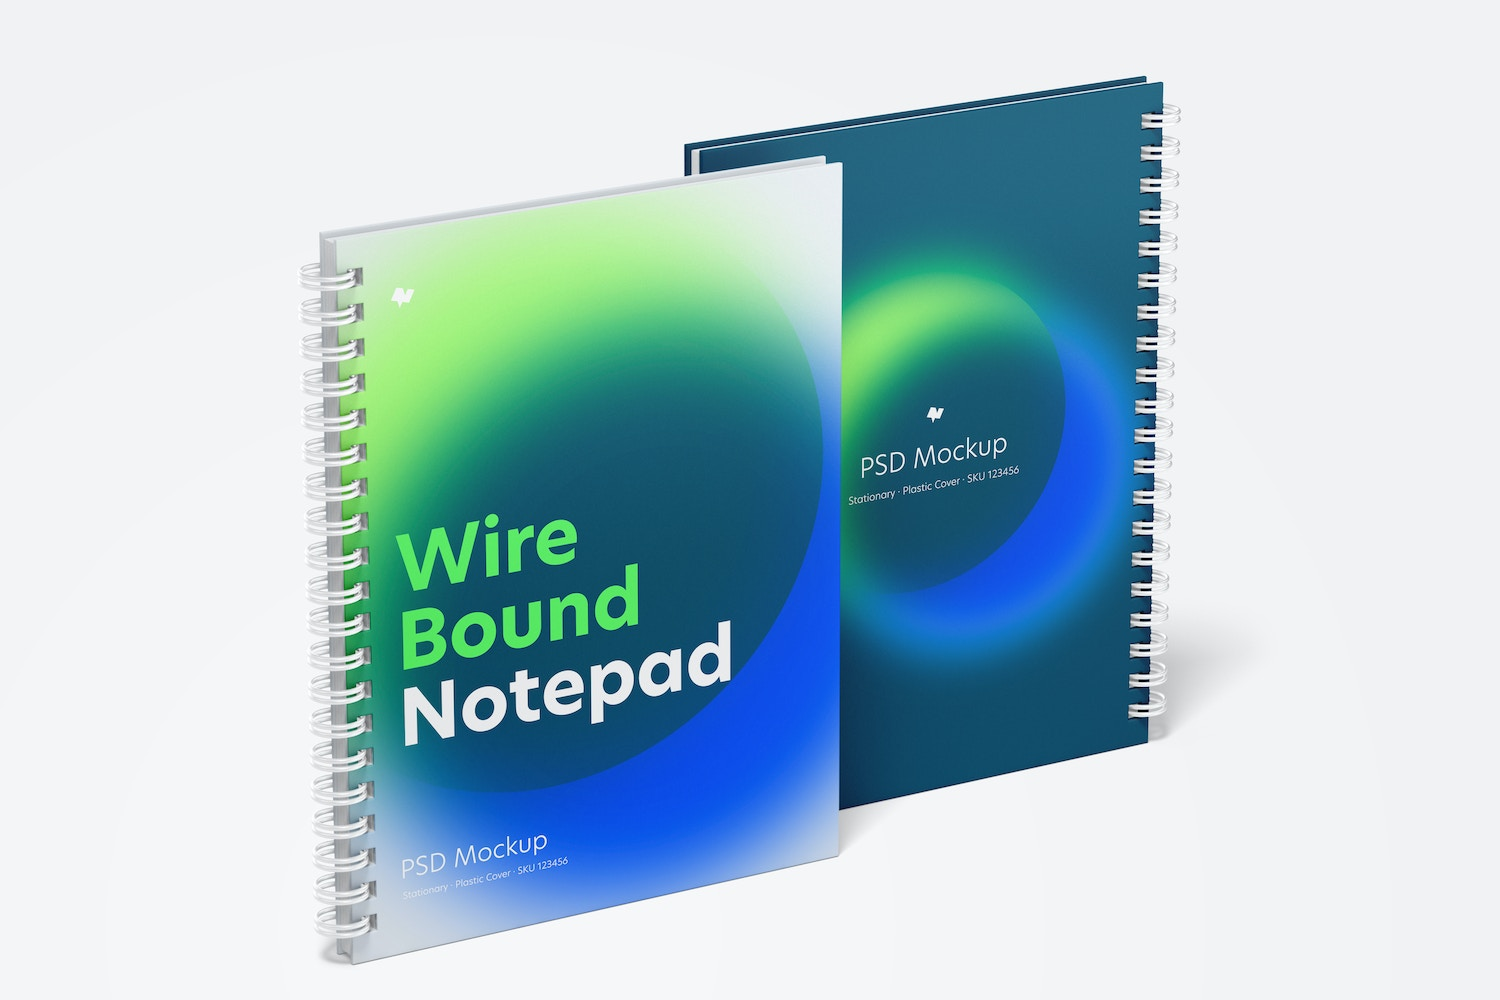 Plastic Cover Wire Bound Notepads Mockup